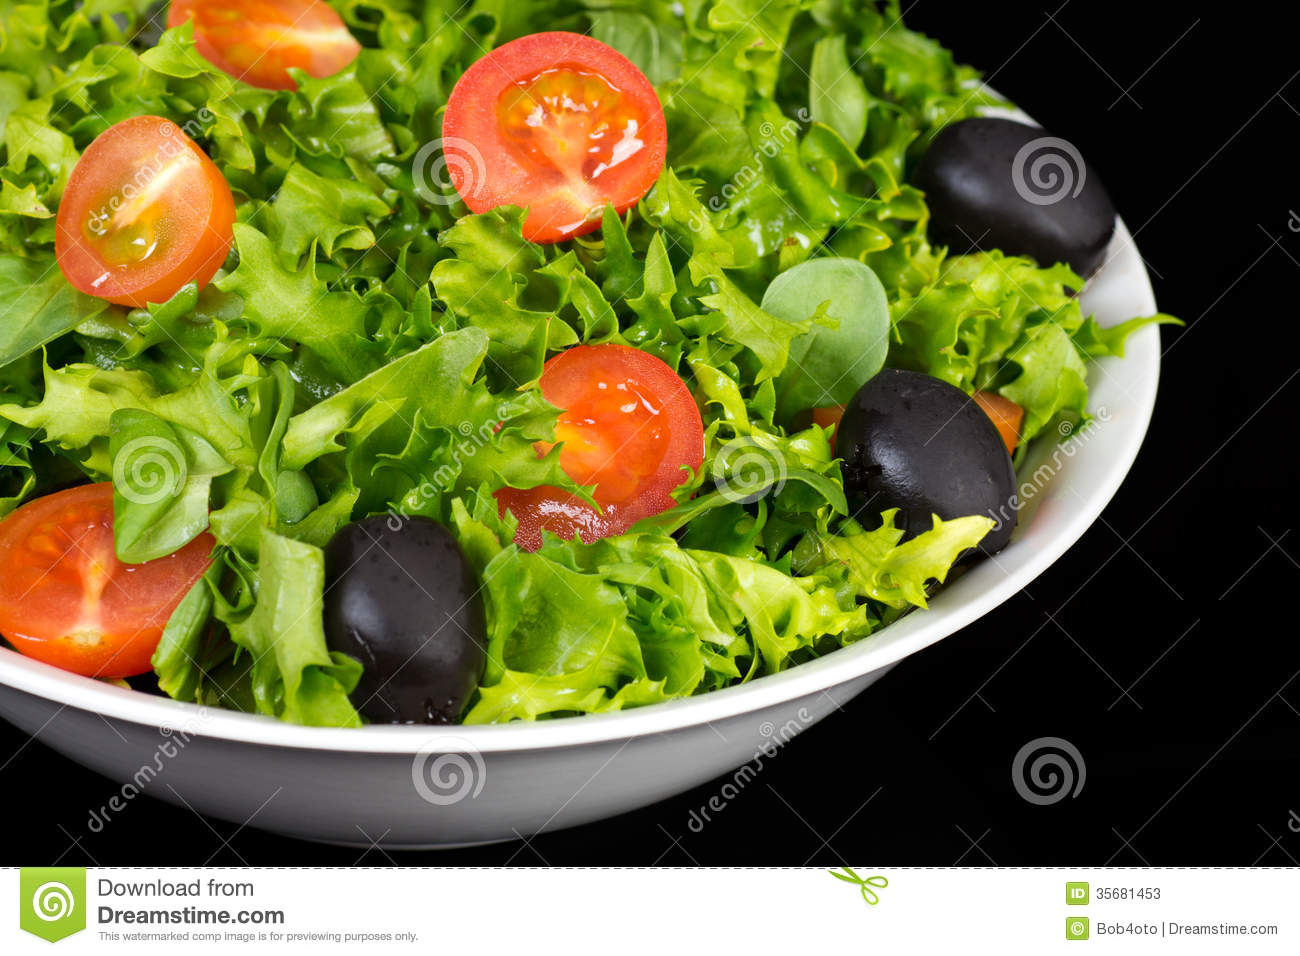 how to make lettuce and tomato salad